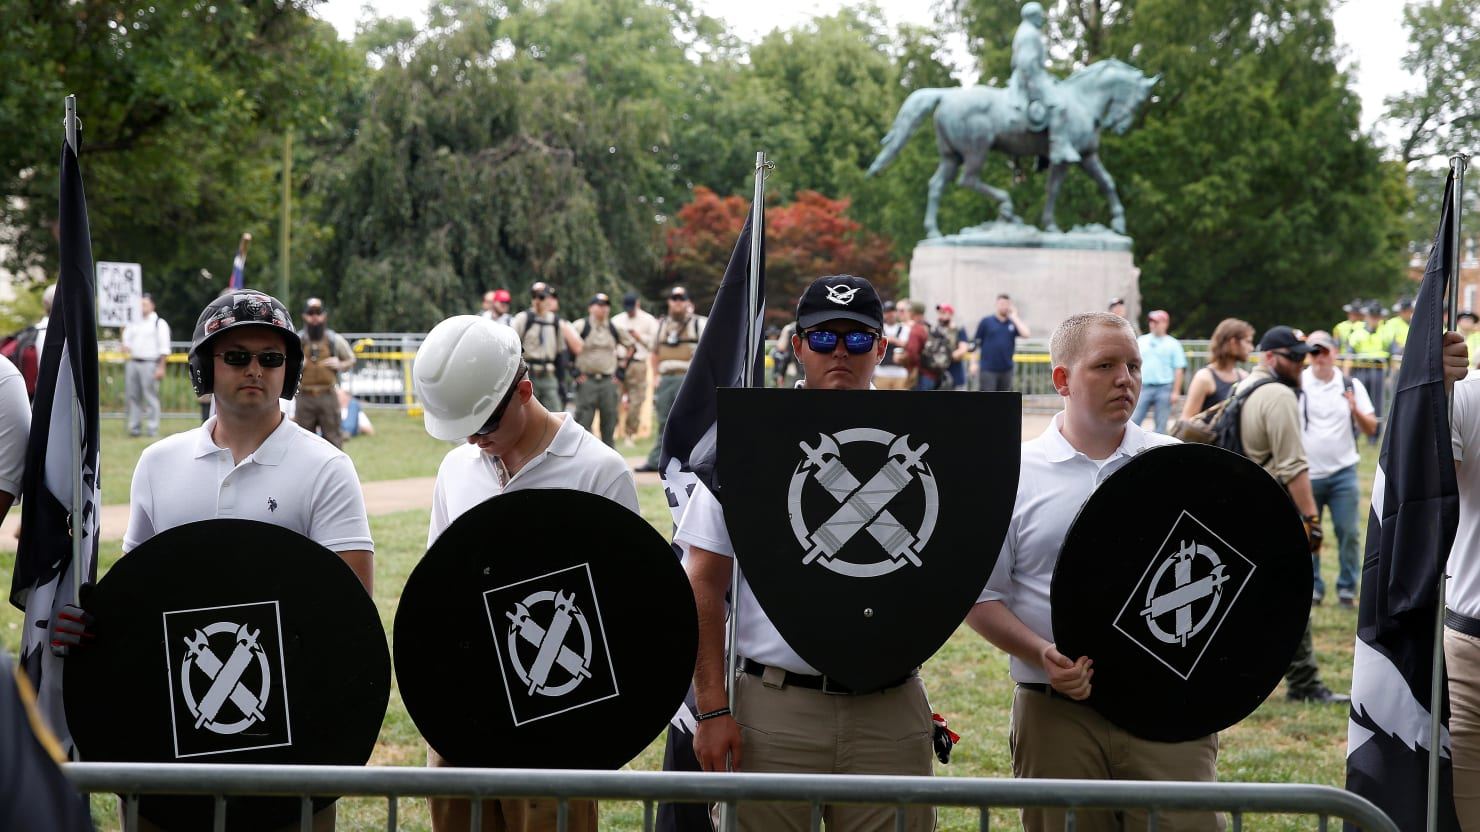 Southern California Man Lied About Belonging to White Supremacist Groups to Get Security Clearance